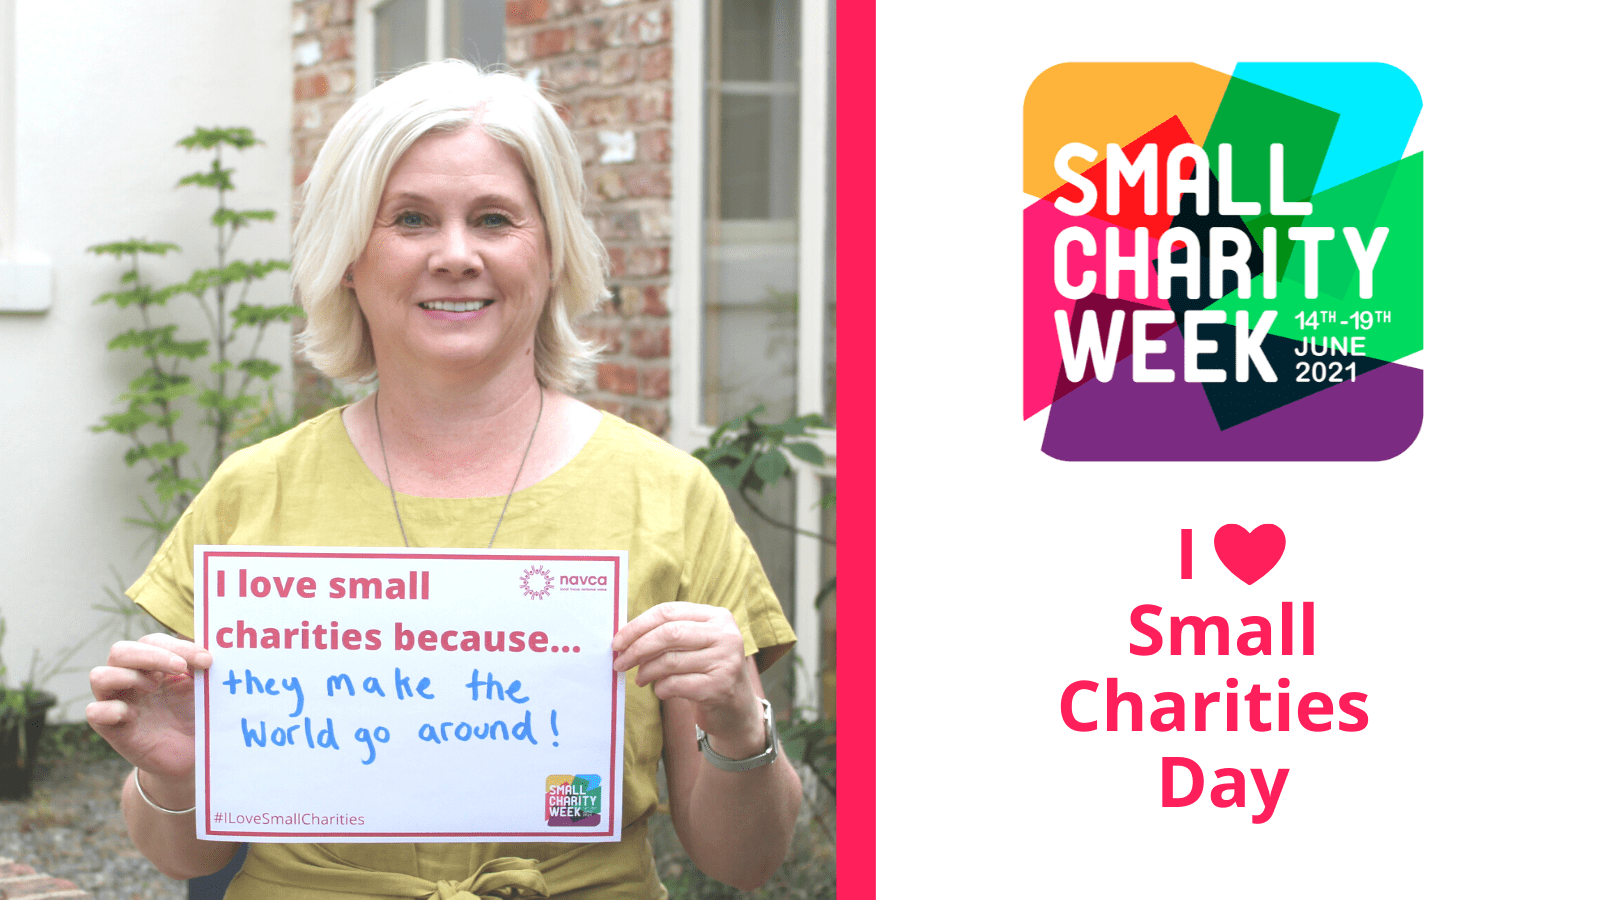 White female with short blonde hair holding up a a4 piece of paper that reads: I love small charities because... they make the world go around! In the background is a courtyard with plants and a large window. To the right is the Small Charity Week Logo 14 -19 June 2021. I heart small charities day.